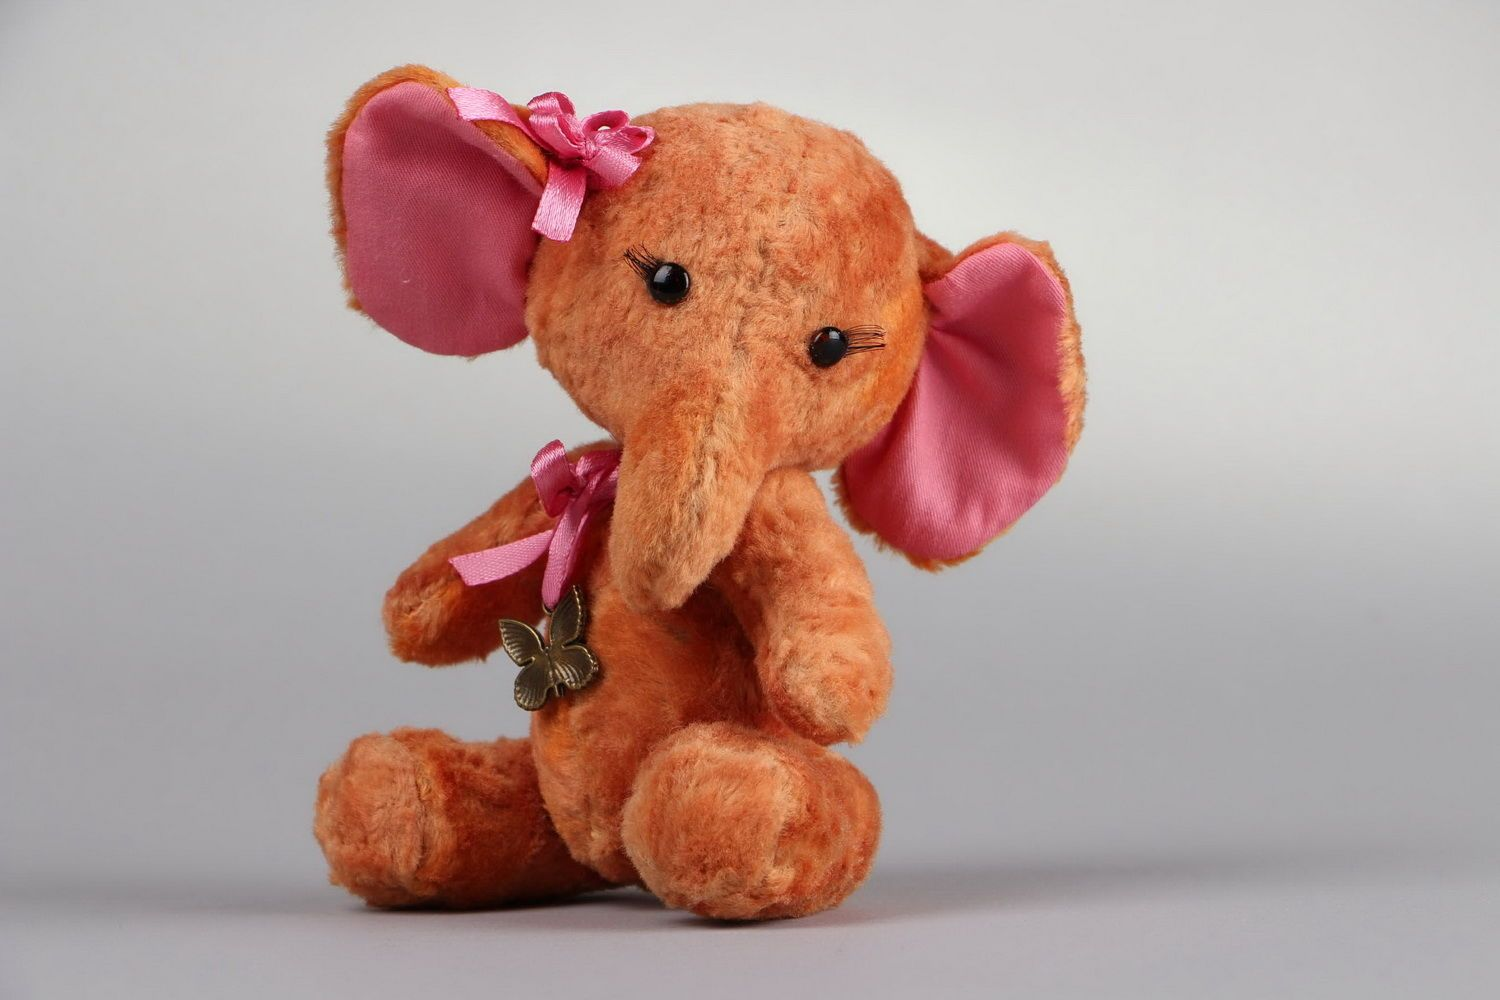 pillow toys Toy Elephant - MADEheart.com